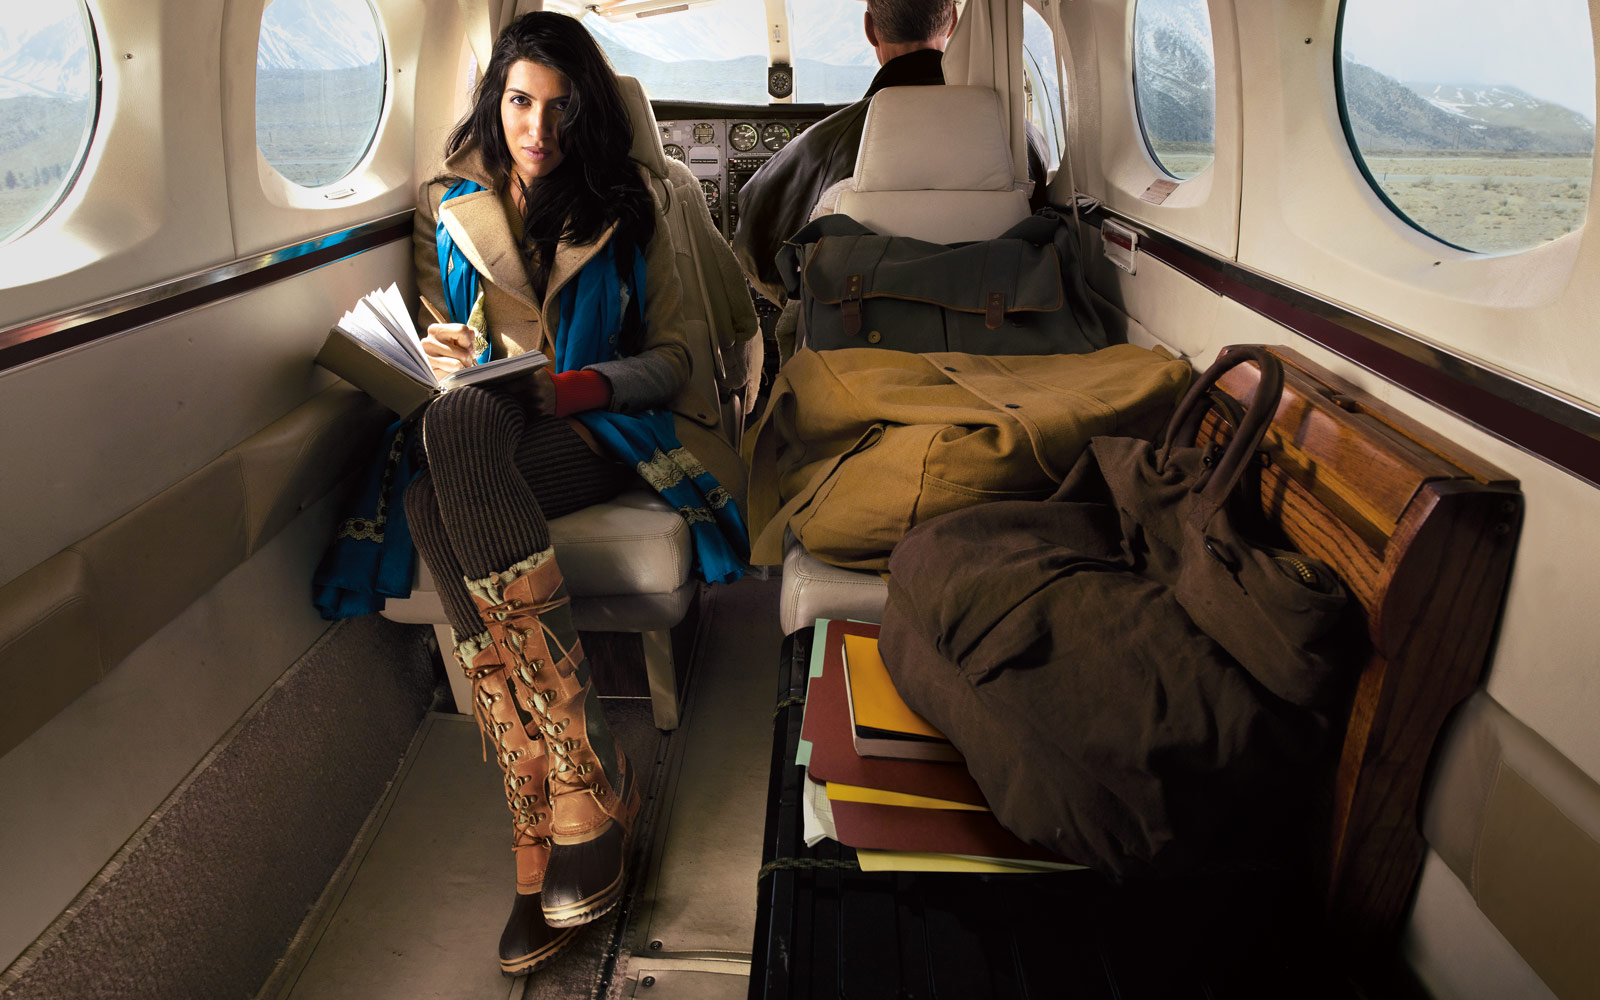 Jet Setting Social Entrepreneur Leila Janah Is SORELs Face For The Get Your Boots Dirty Campaign